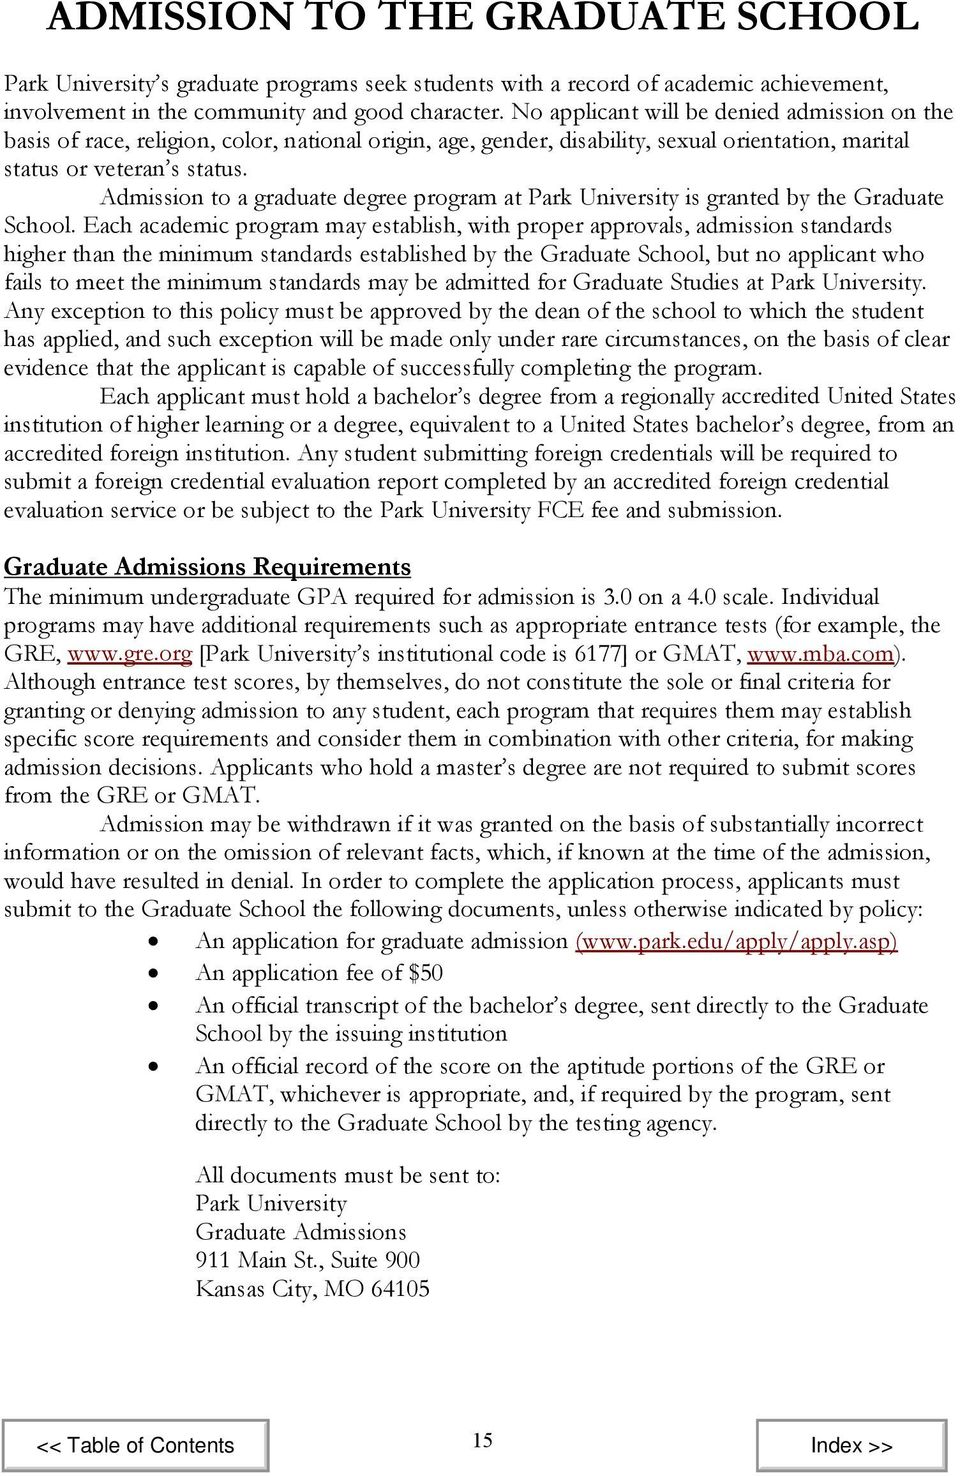 Admission to a graduate degree program at Park University is granted by the Graduate School.